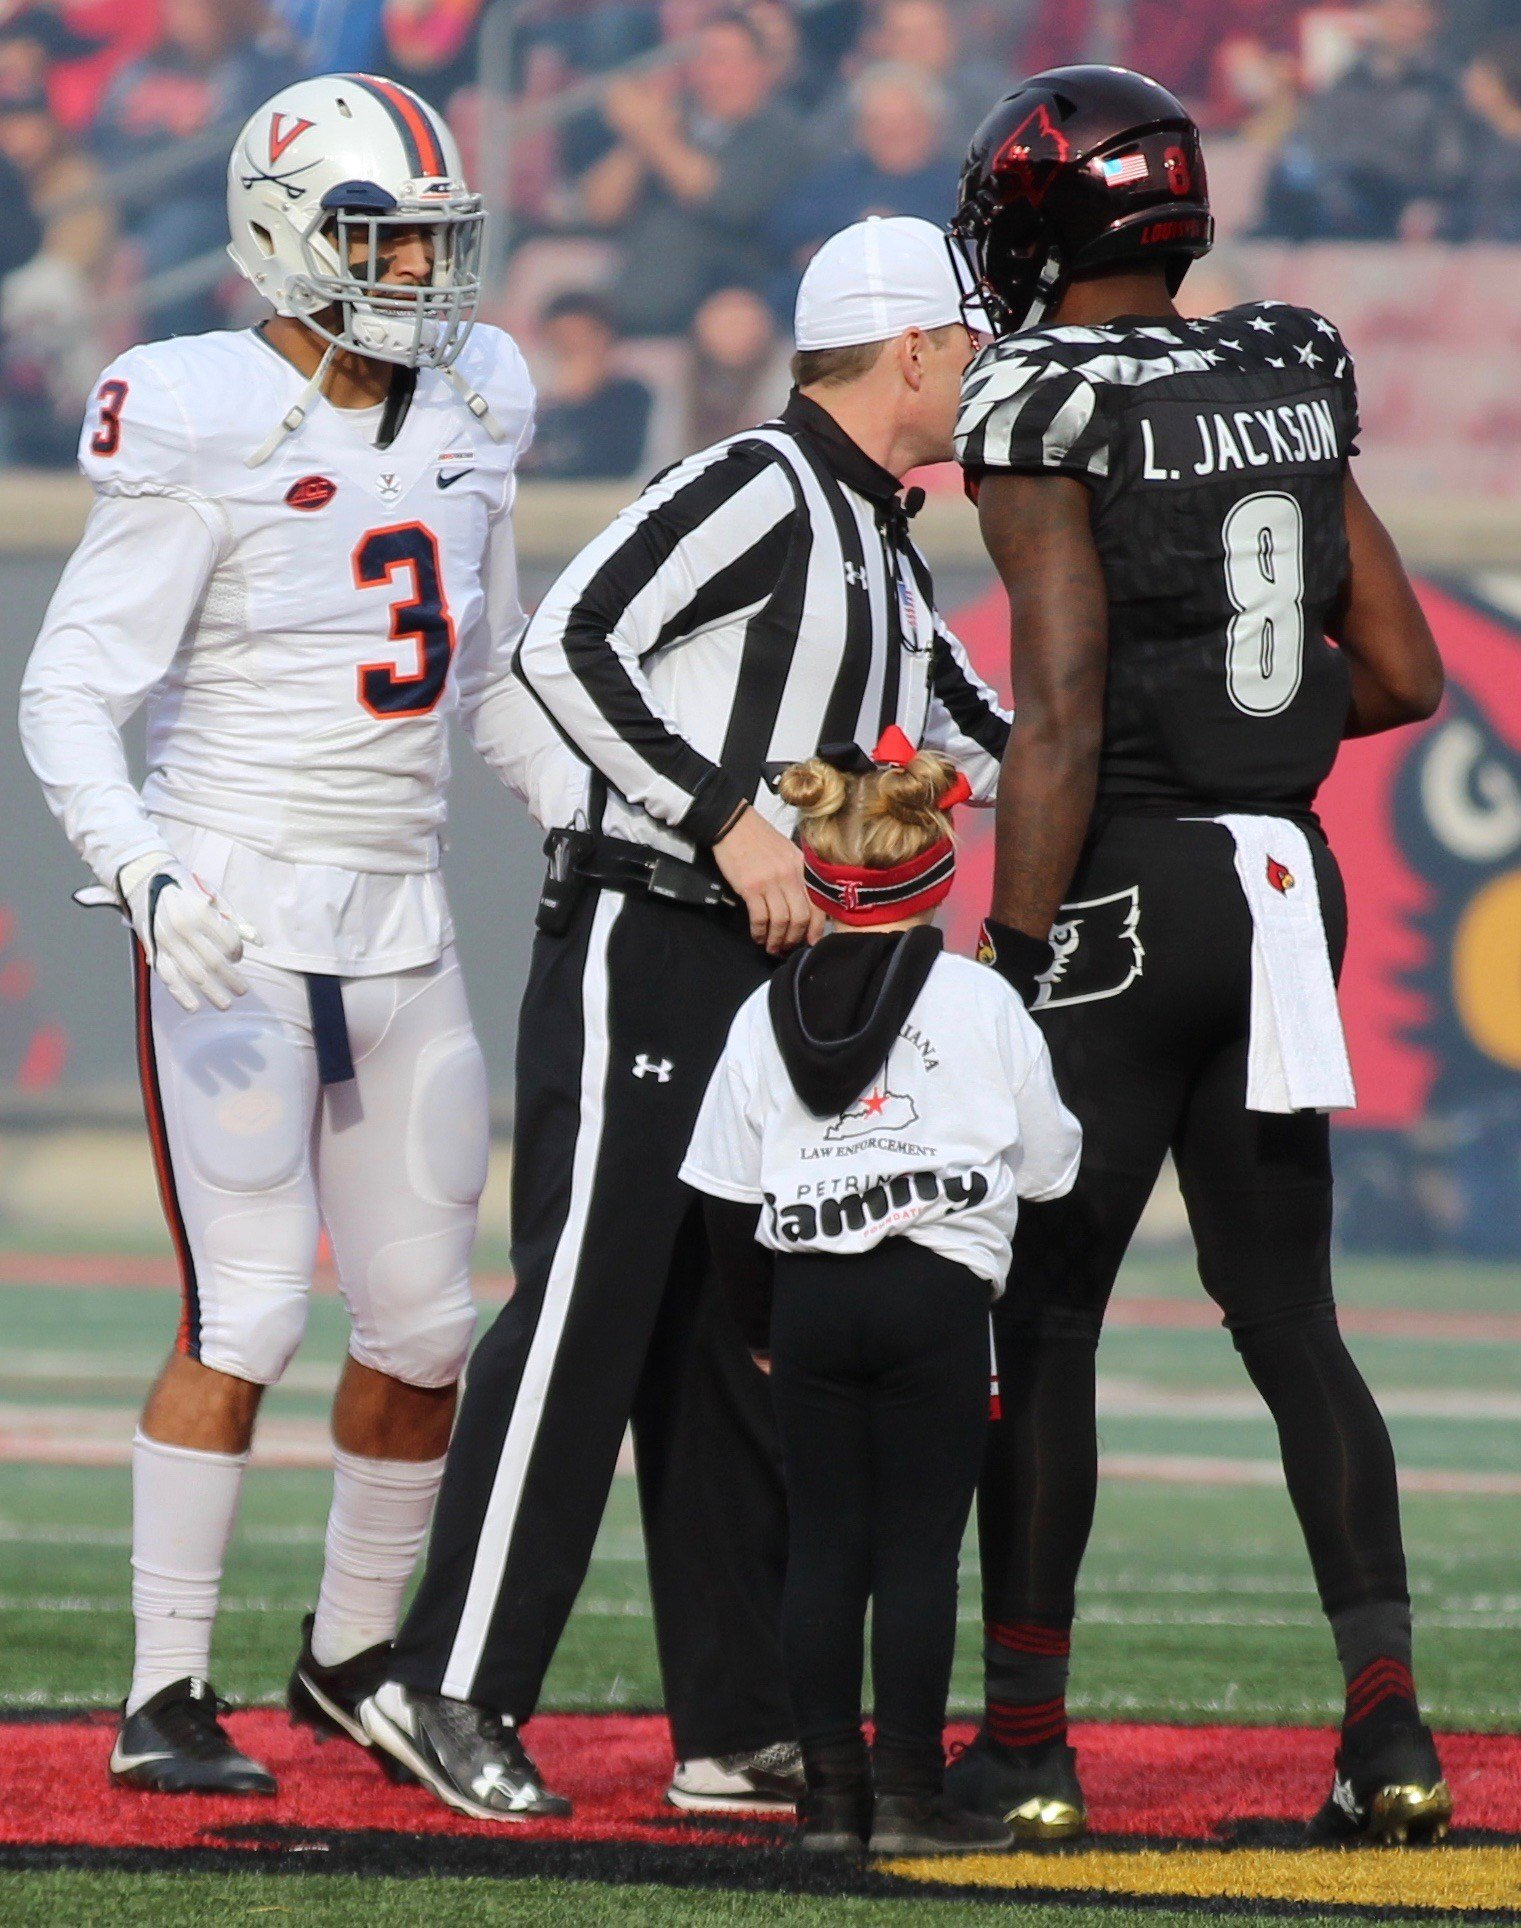 Lamar Jackson holds the hand of a young fan during the coin toss (WDRB photo by Eric Crawford)